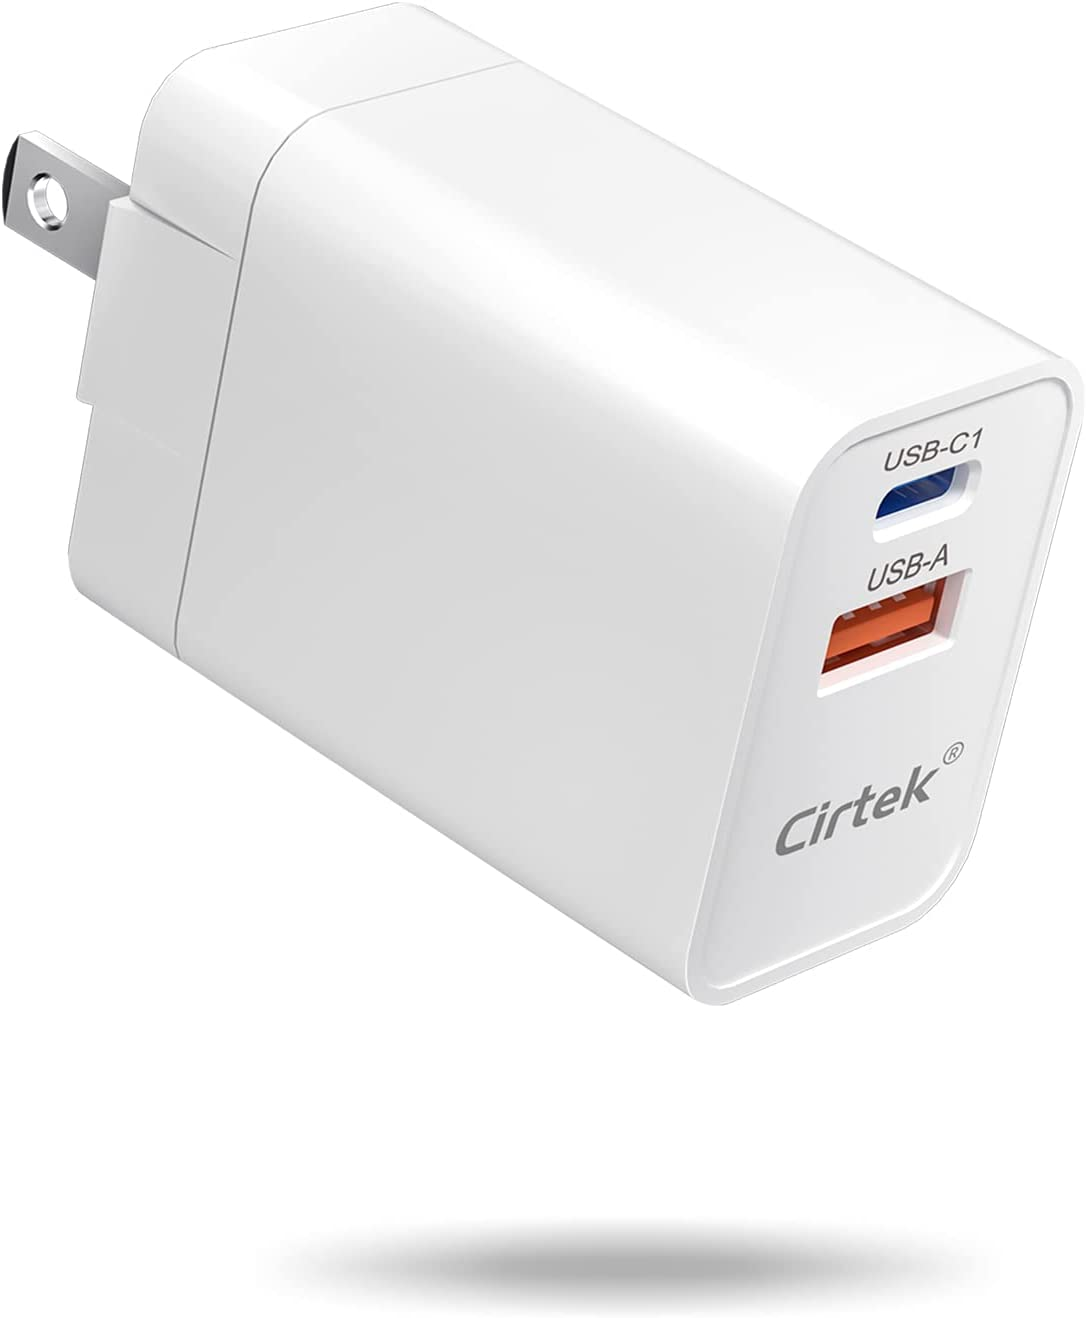 Cirtek USB C Charger Dual Port 20W Fast Wall Charger Foldable Plug Type C Power Adapter PD 3.0 USB-C Charger Block Compatible with iPhone 12 Pro Max, iPad Pro, AirPods Pro, Samsung Galaxy, Pixel